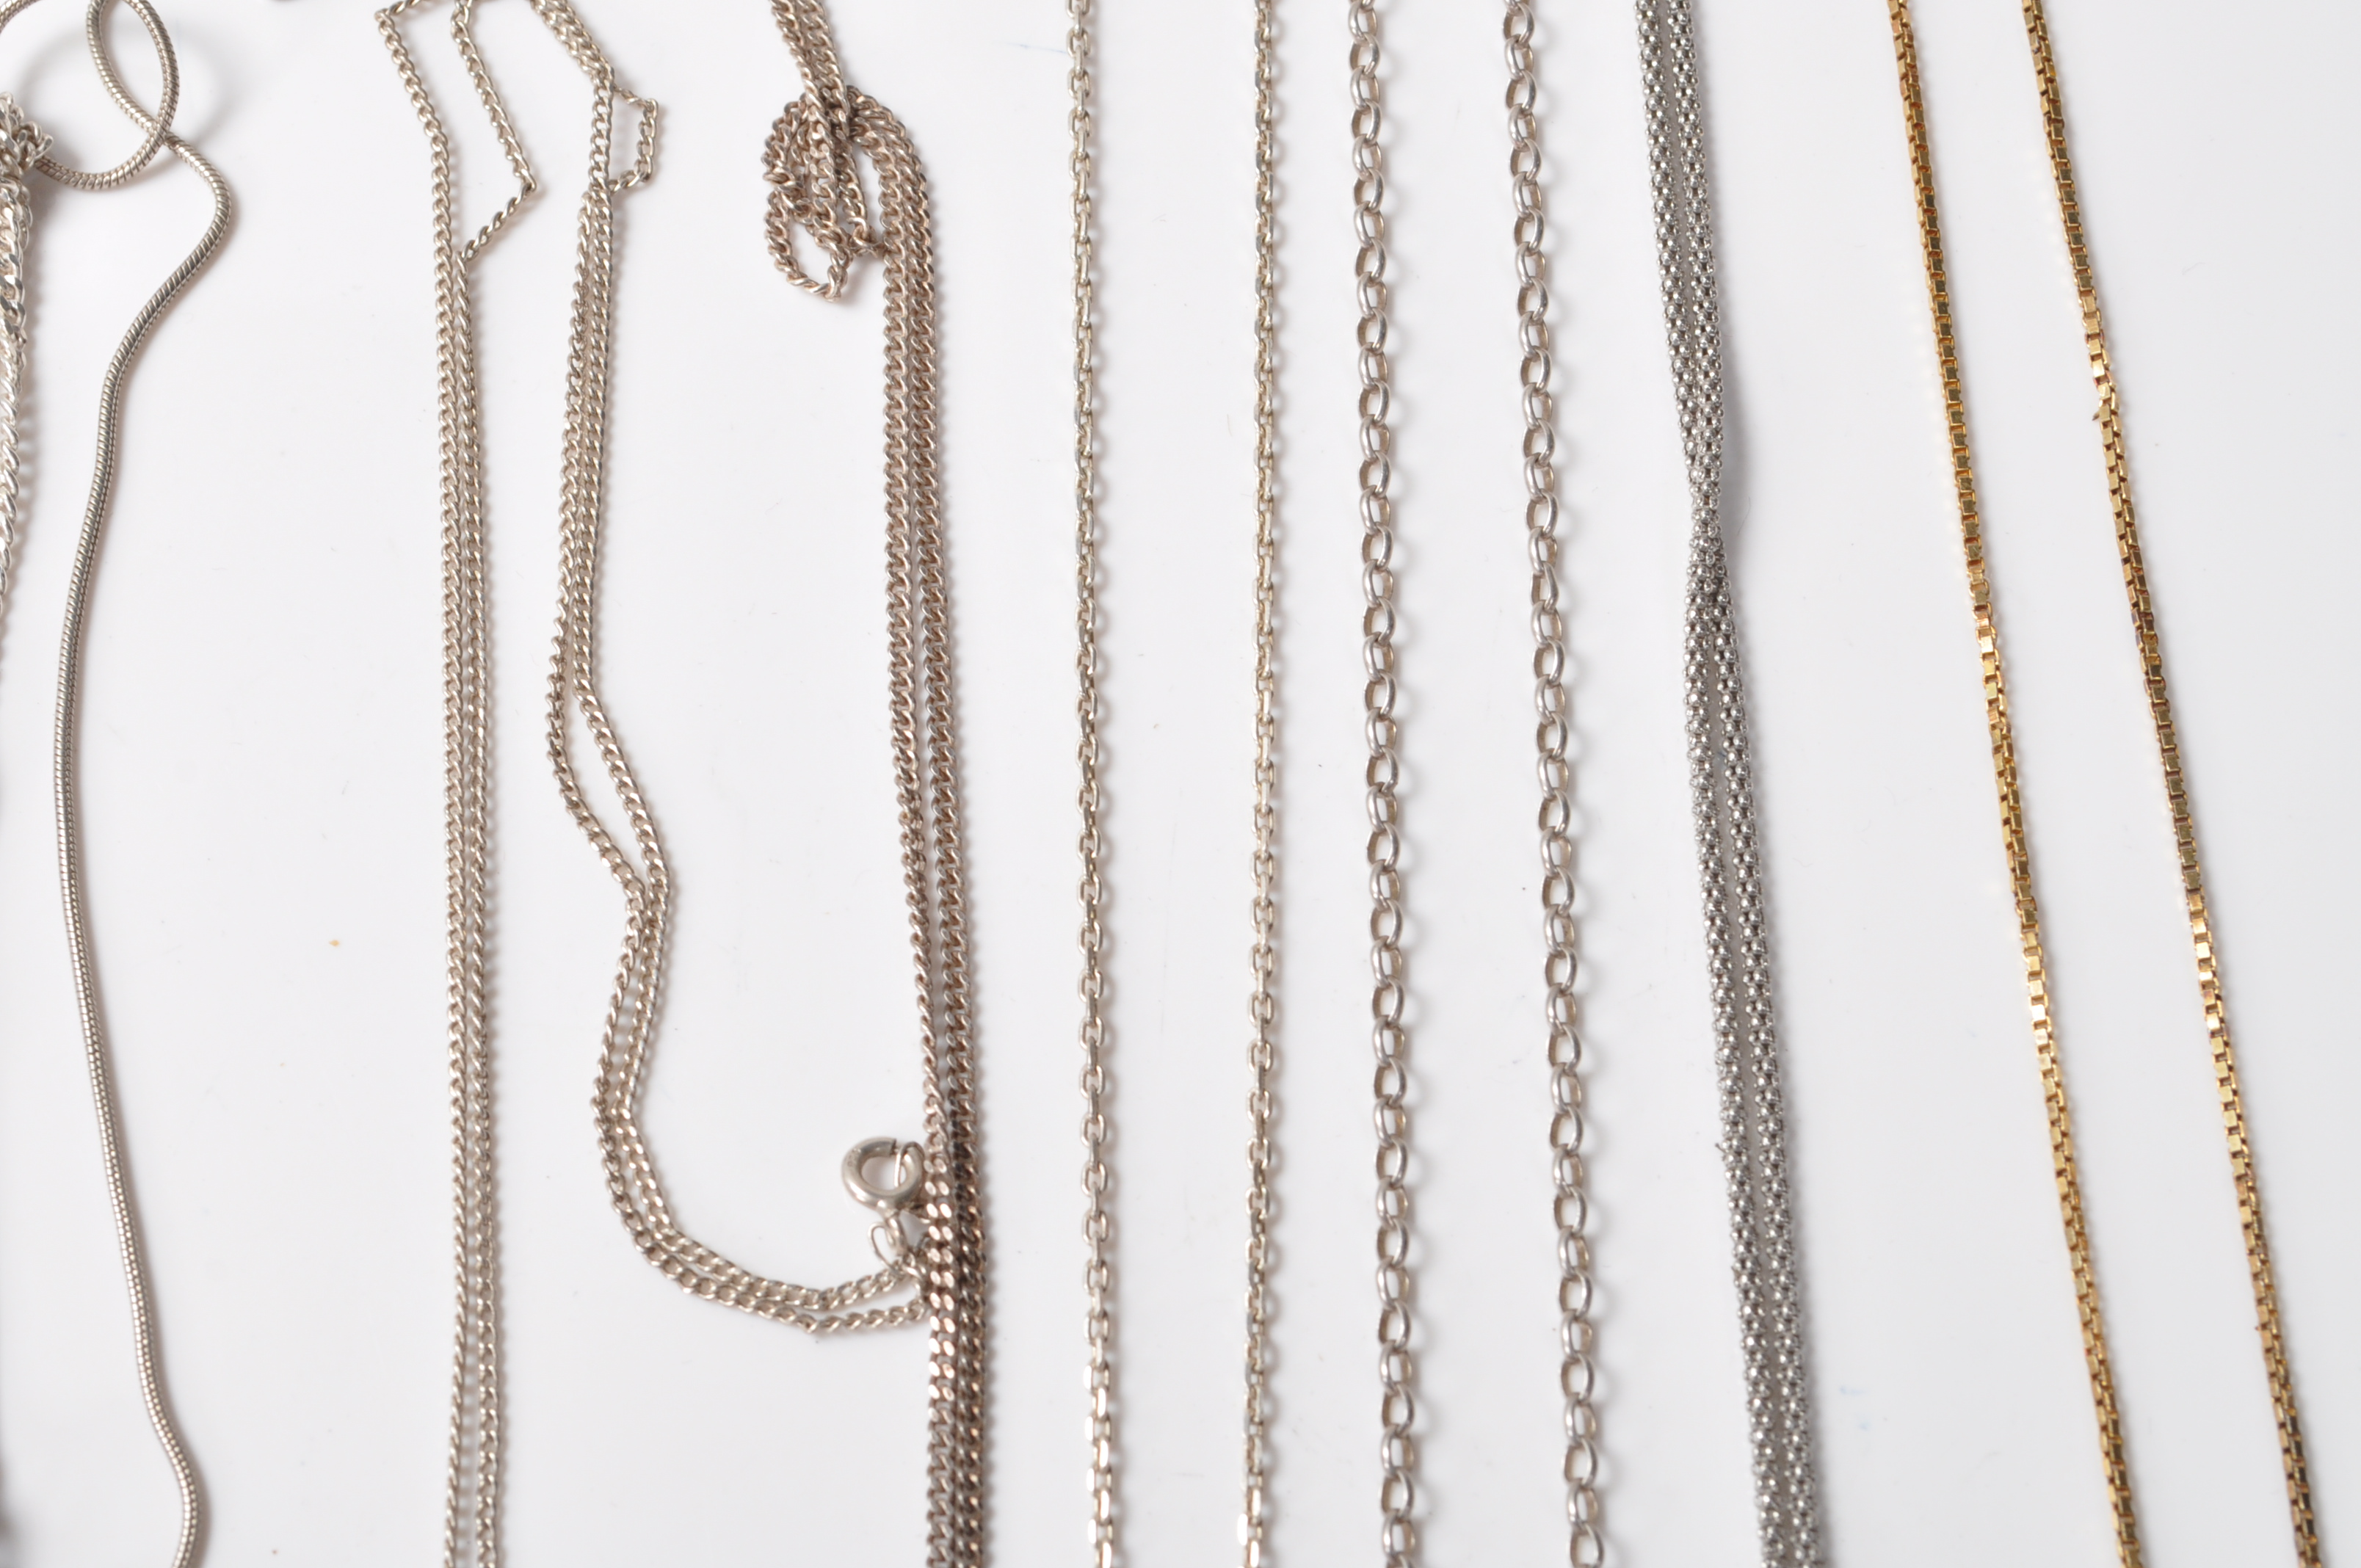 COLLECTION OF STAMPED 925 SILVER NECKLACES AND PENDANTS. - Image 5 of 12